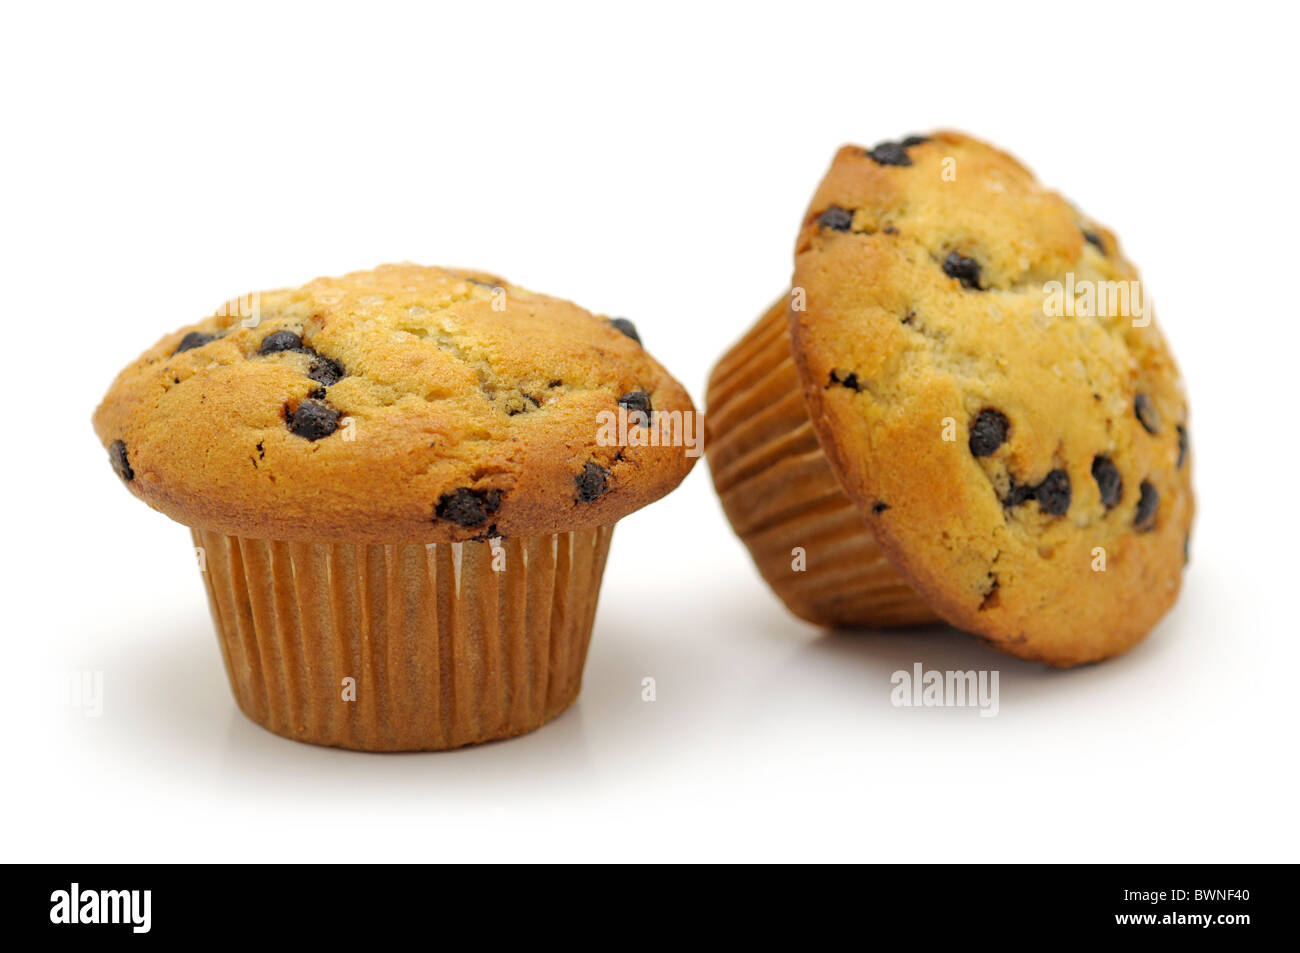 Muffins (chocolate chip) - Stock Image